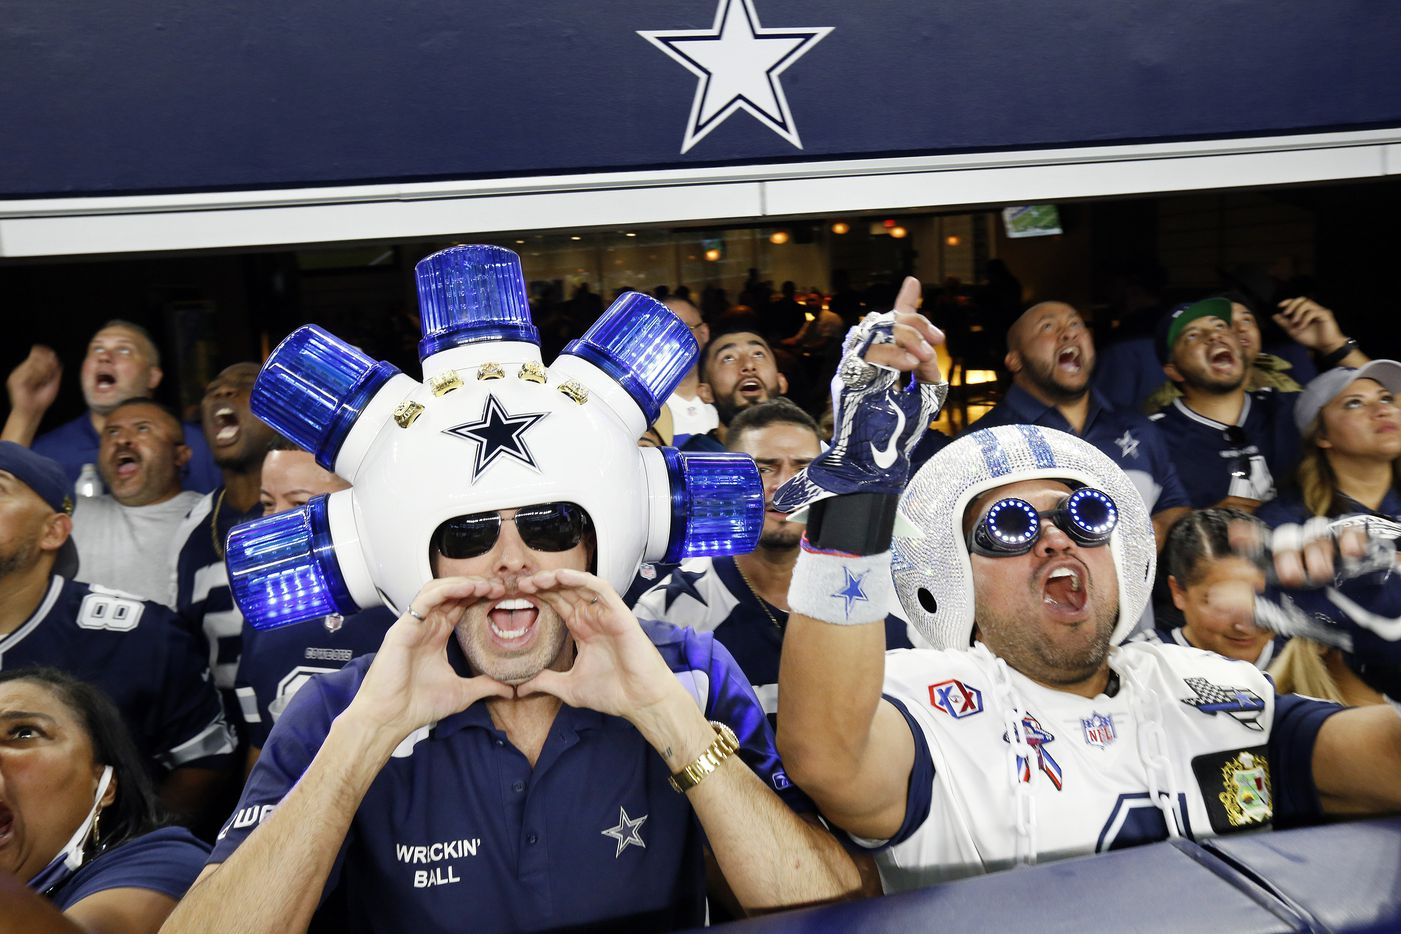 Dallas Cowboys fans cheer their team as they face the Philadelphia Eagles at AT&T Stadium in Arlington, Monday, September 27, 2021. (Tom Fox/The Dallas Morning News)